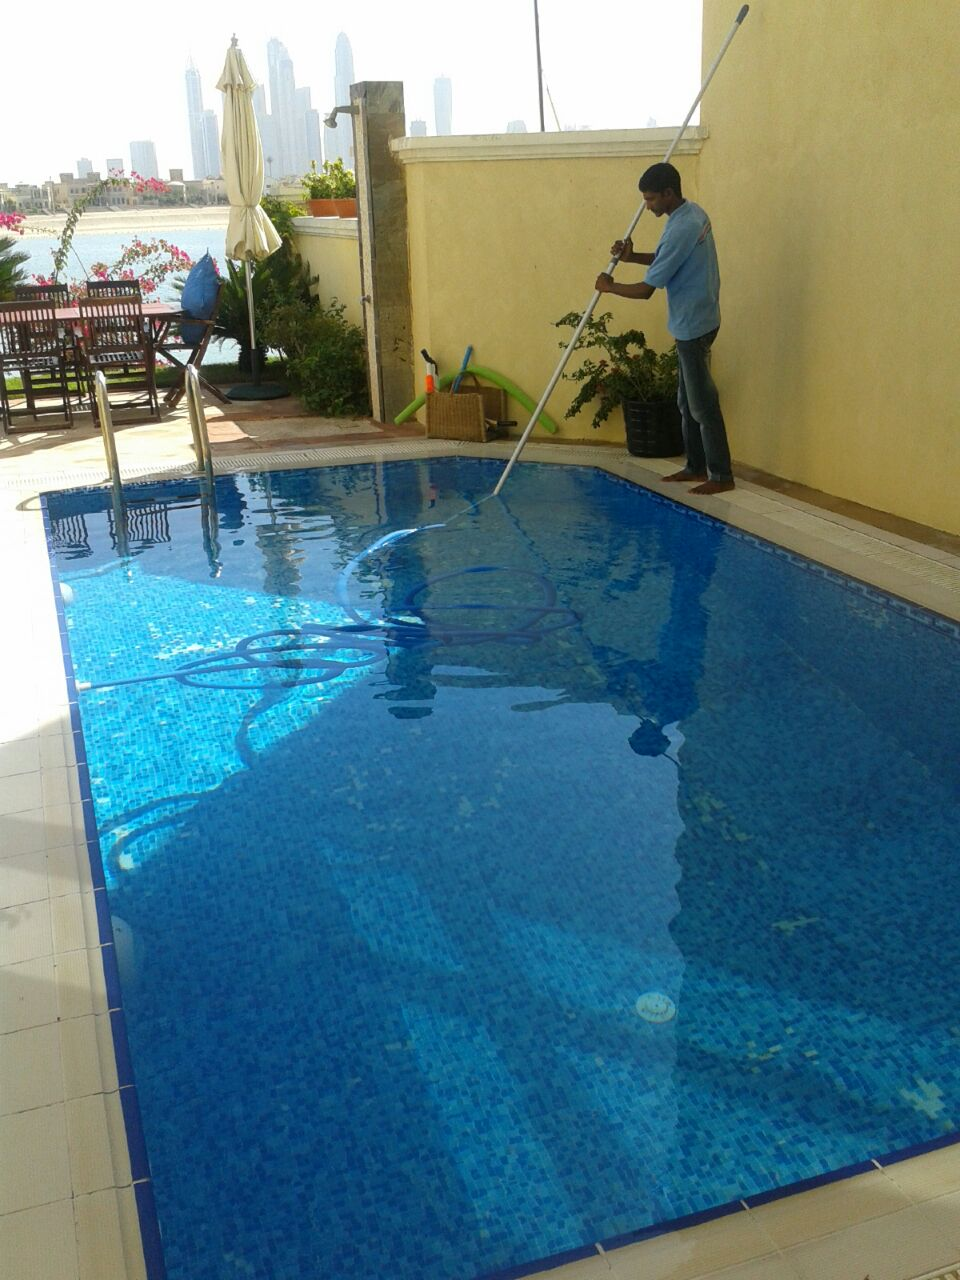 Pool cleaning staff